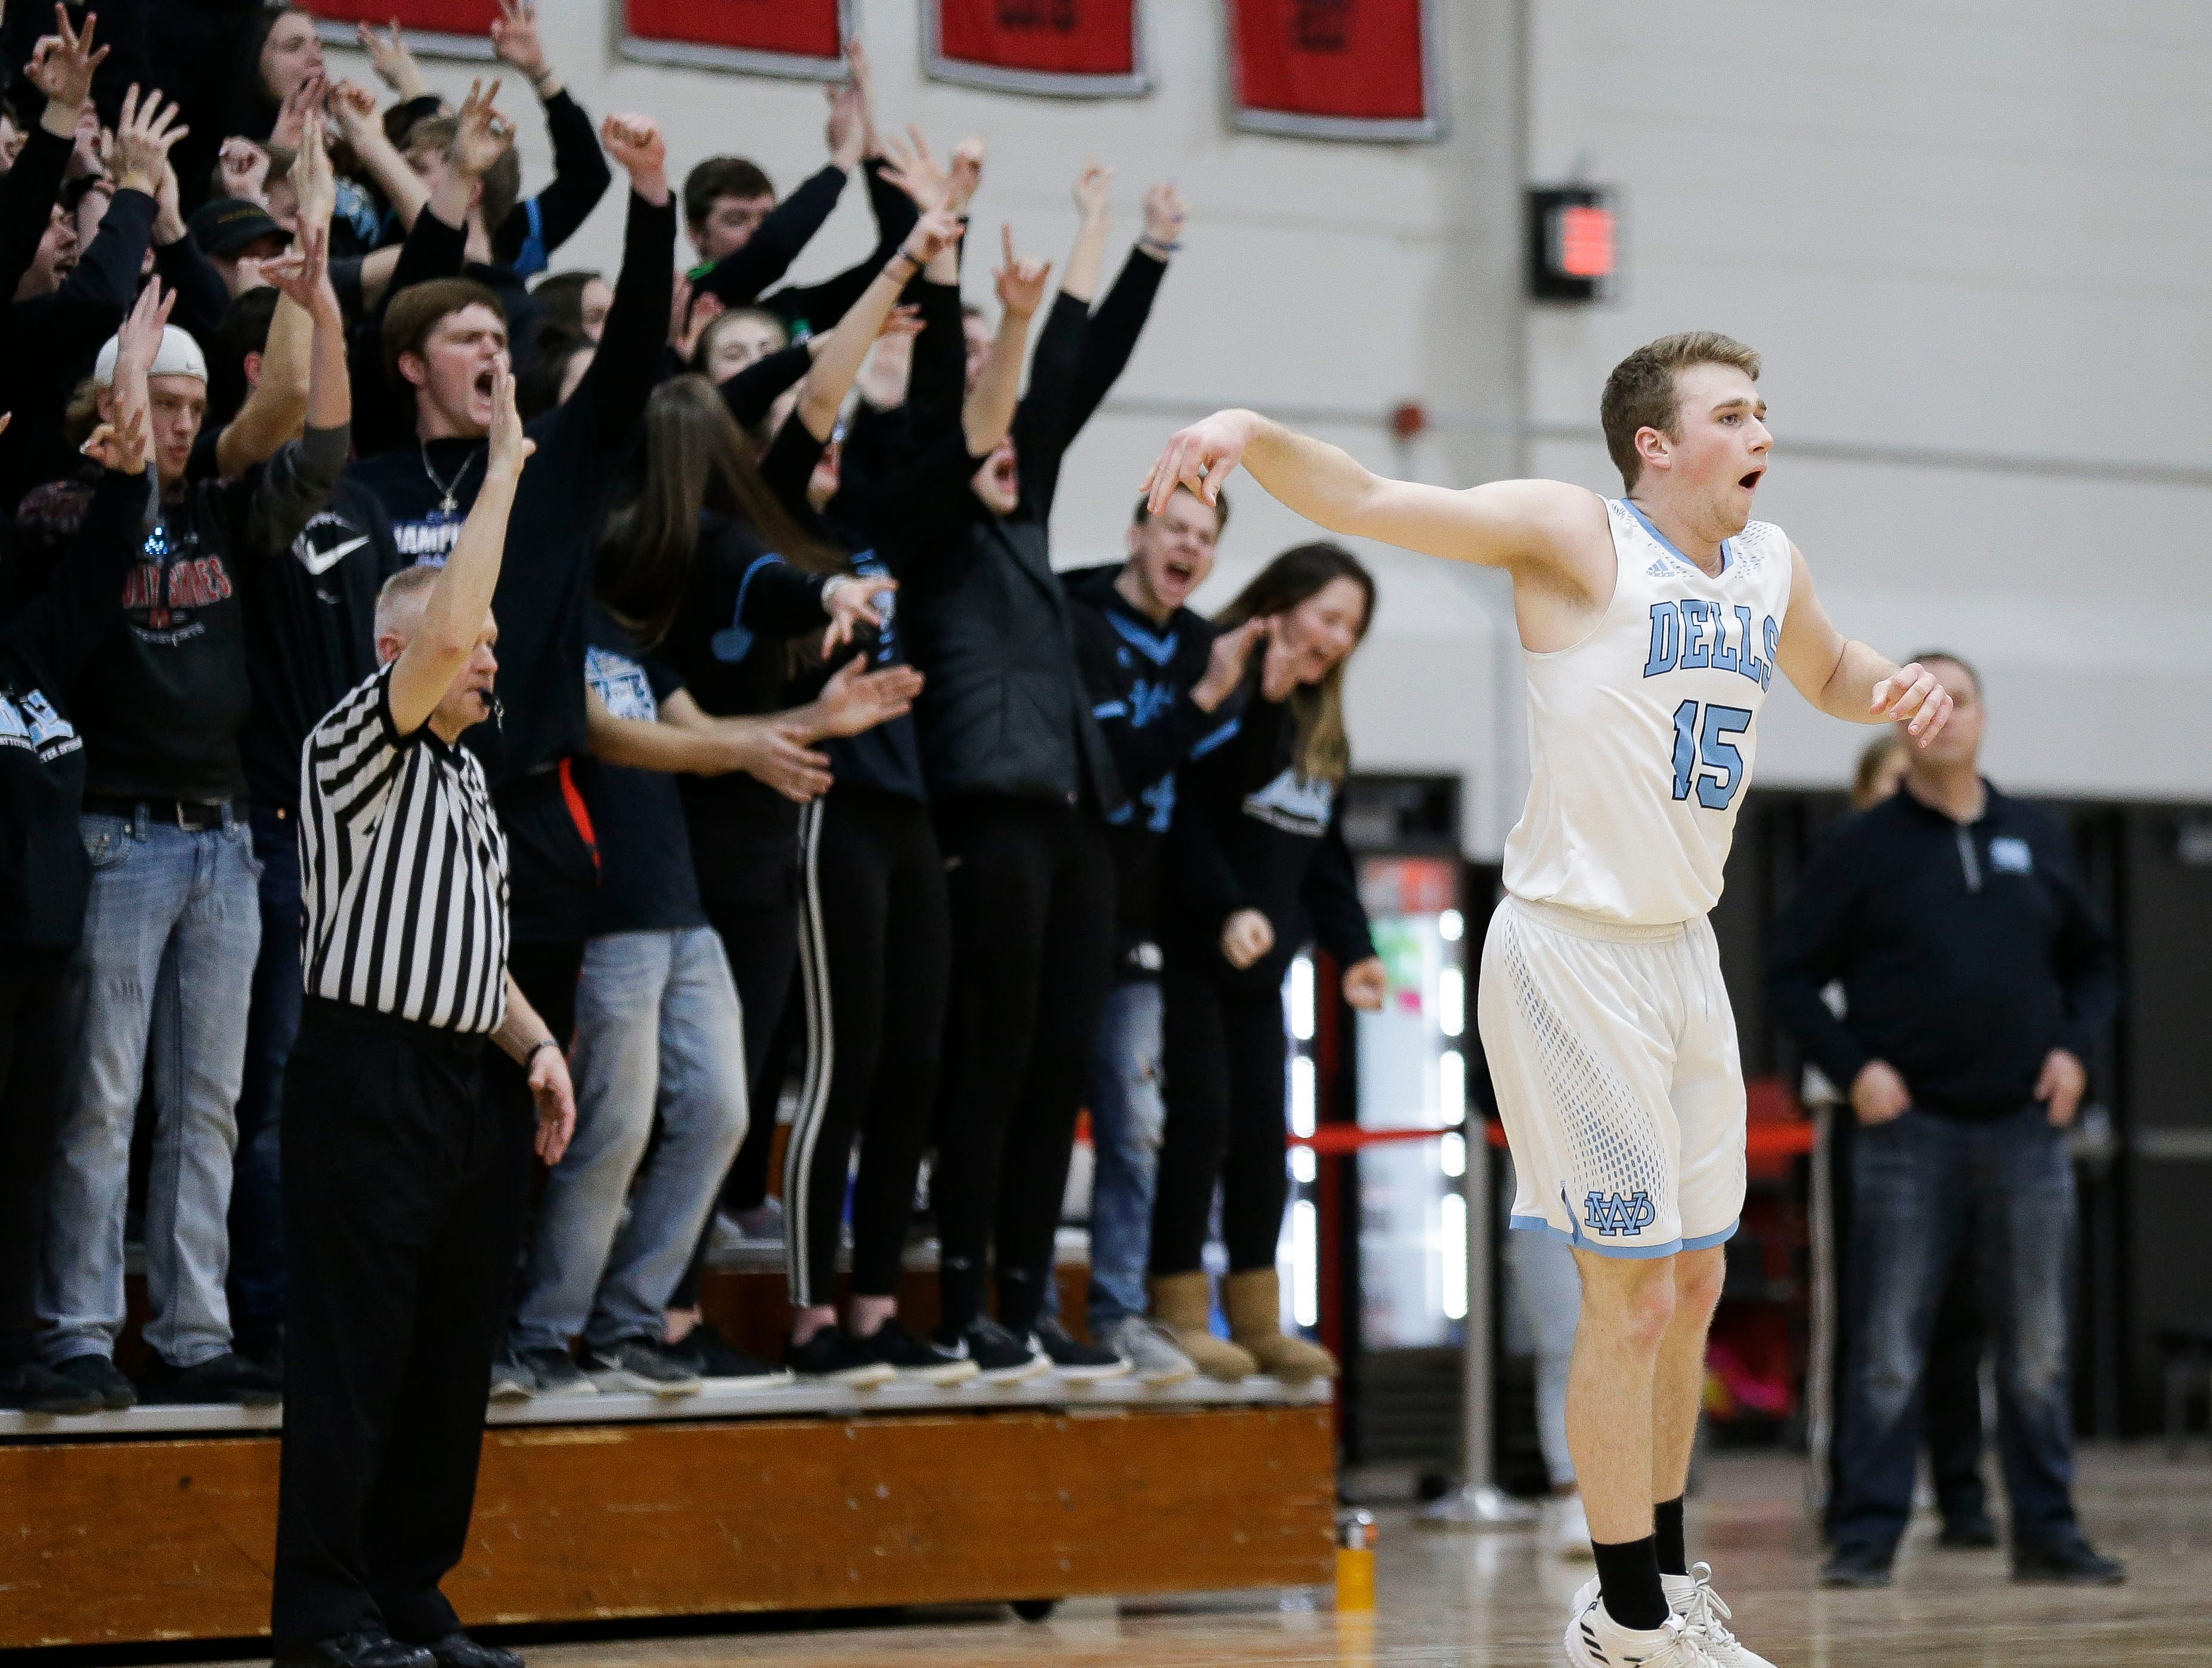 Wisconsin Dells' Dylan Anchor (15) reacts after hitting a 3-pointer against Stratford in a Division 3 sectional semifinal on Thursday, March 7, 2019, at Stevens Point Area High School in Stevens Point, Wis. Tork Mason/USA TODAY NETWORK-Wisconsin